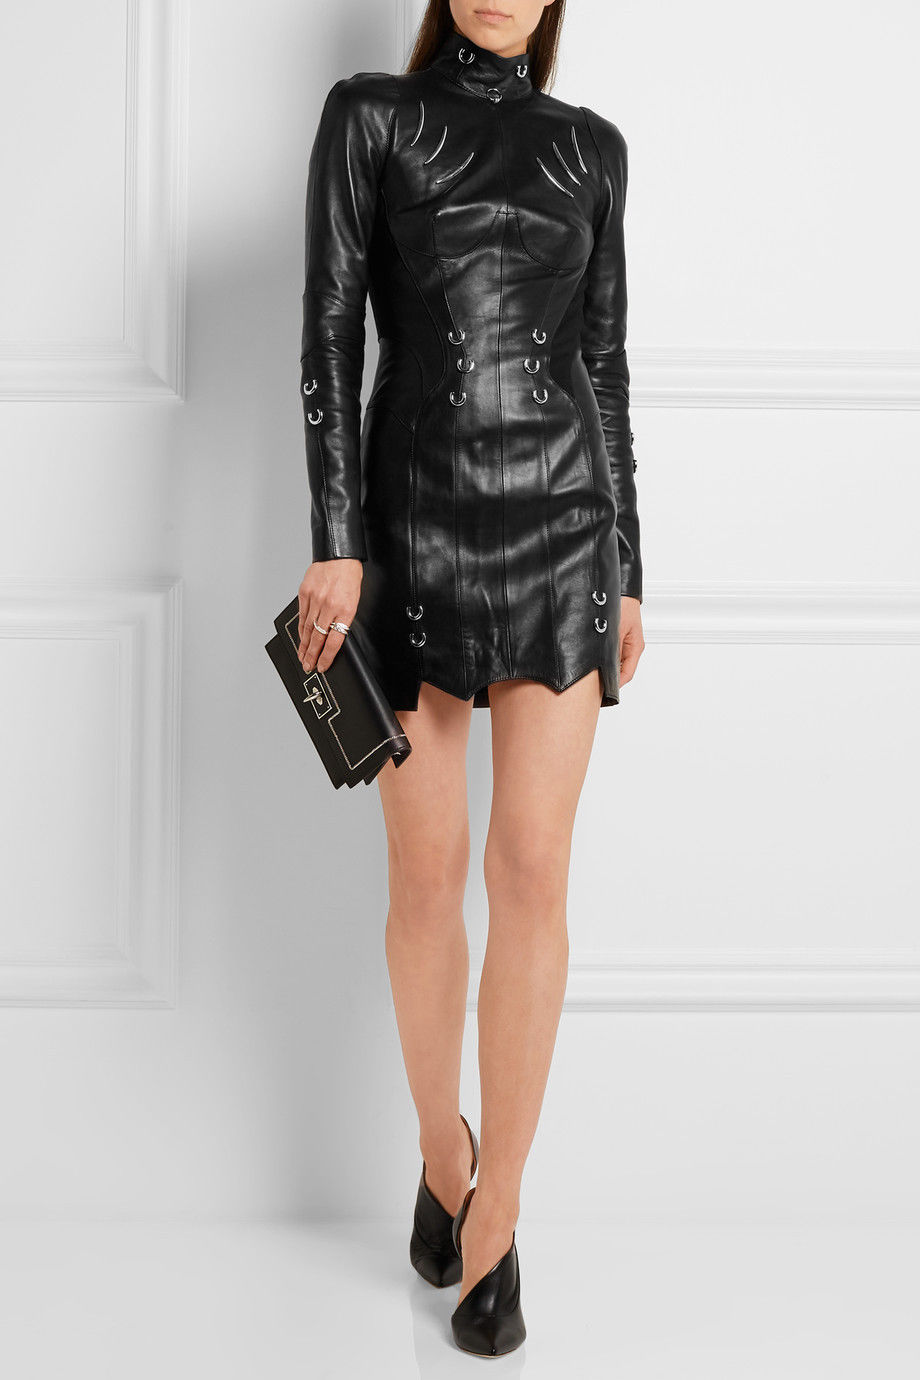 ASYMMETRICAL HEM DETAILED COCKTAIL WOMEN NEWLY ARRIVED REAL LEATHER DRESS